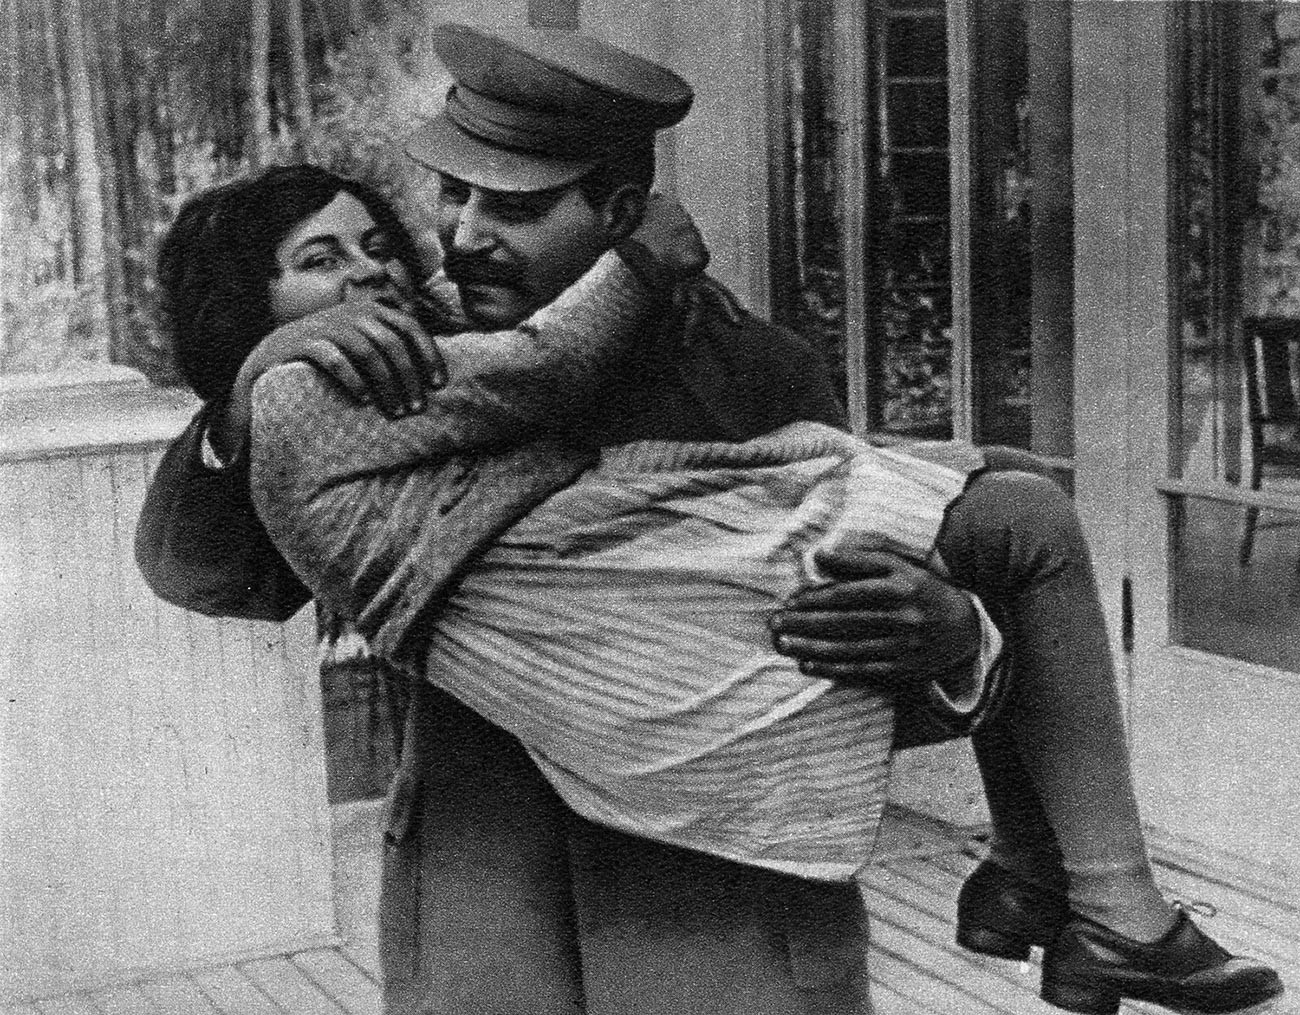 Joseph Stalin lifting his daughter Svetlana up with his both arms